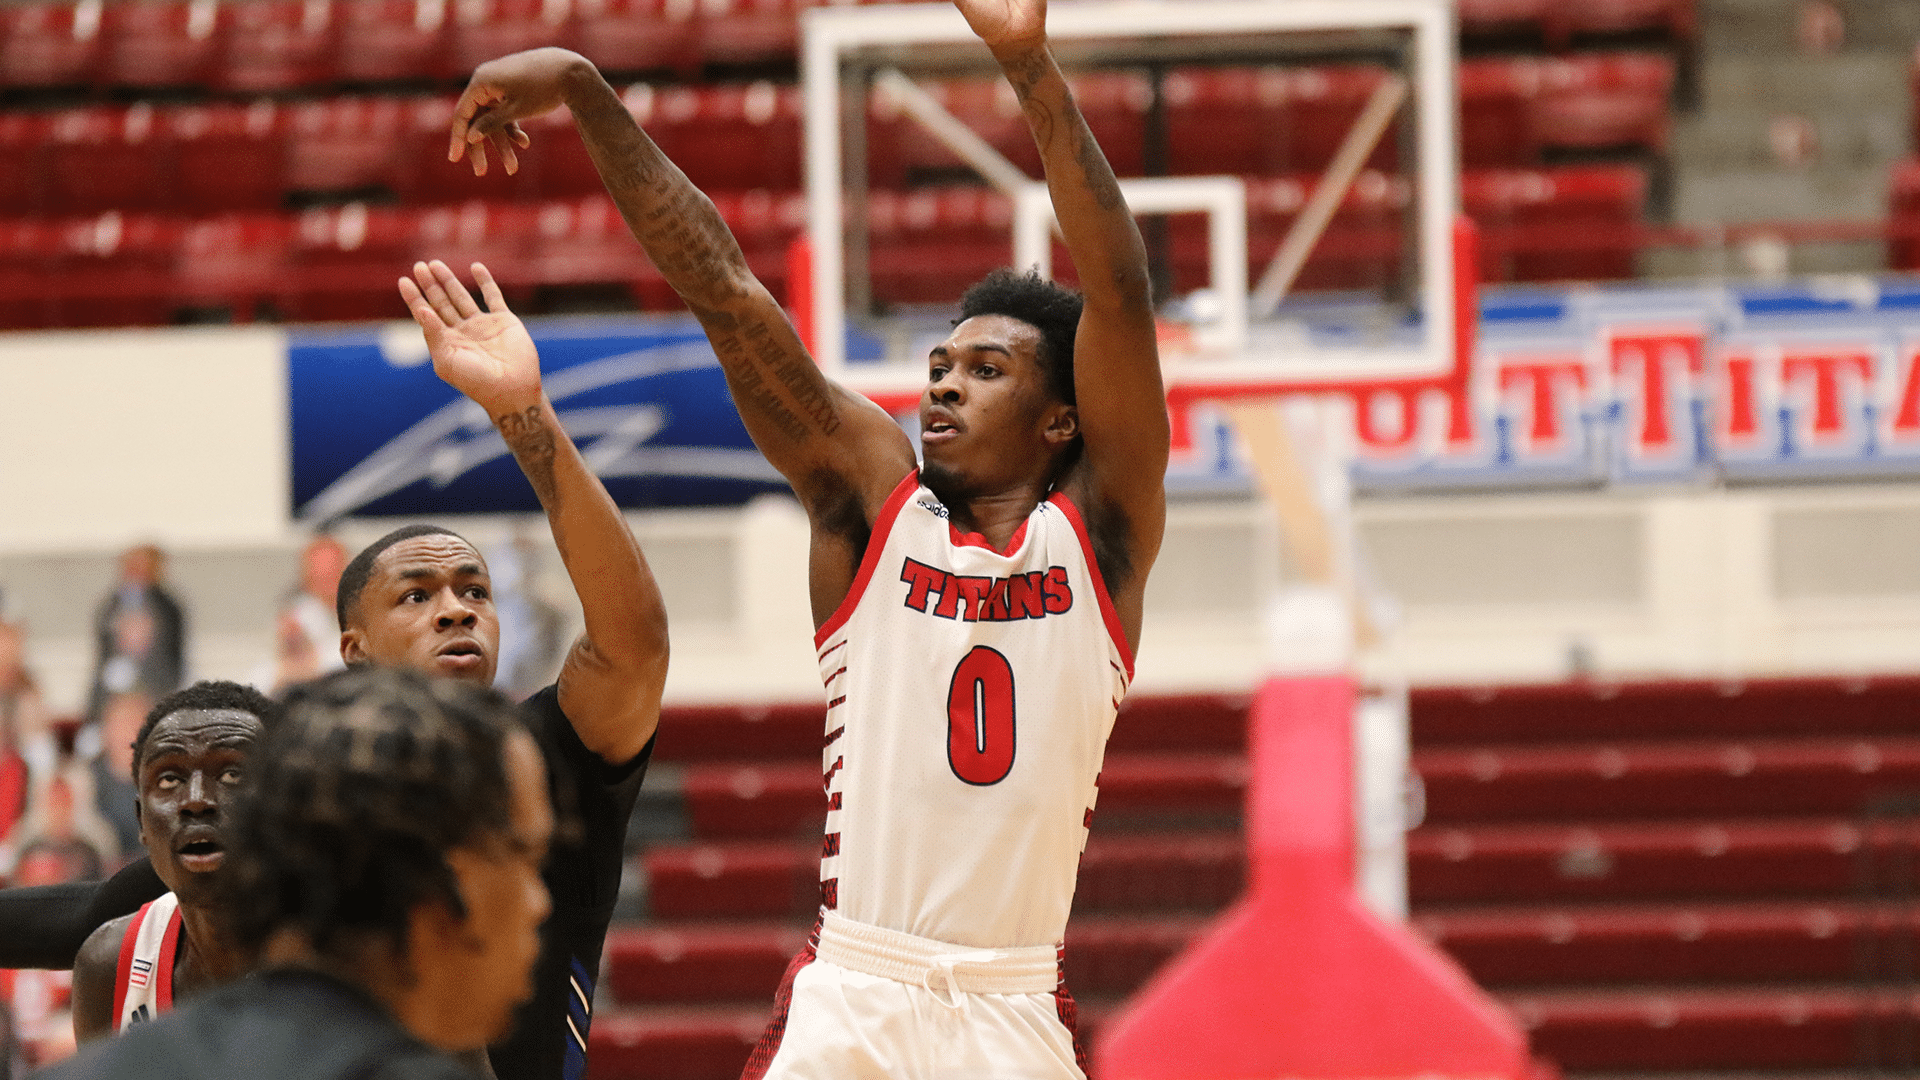 Antoine Davis and Detroit Mercy could be a tough team to face in the Horizon League this season.